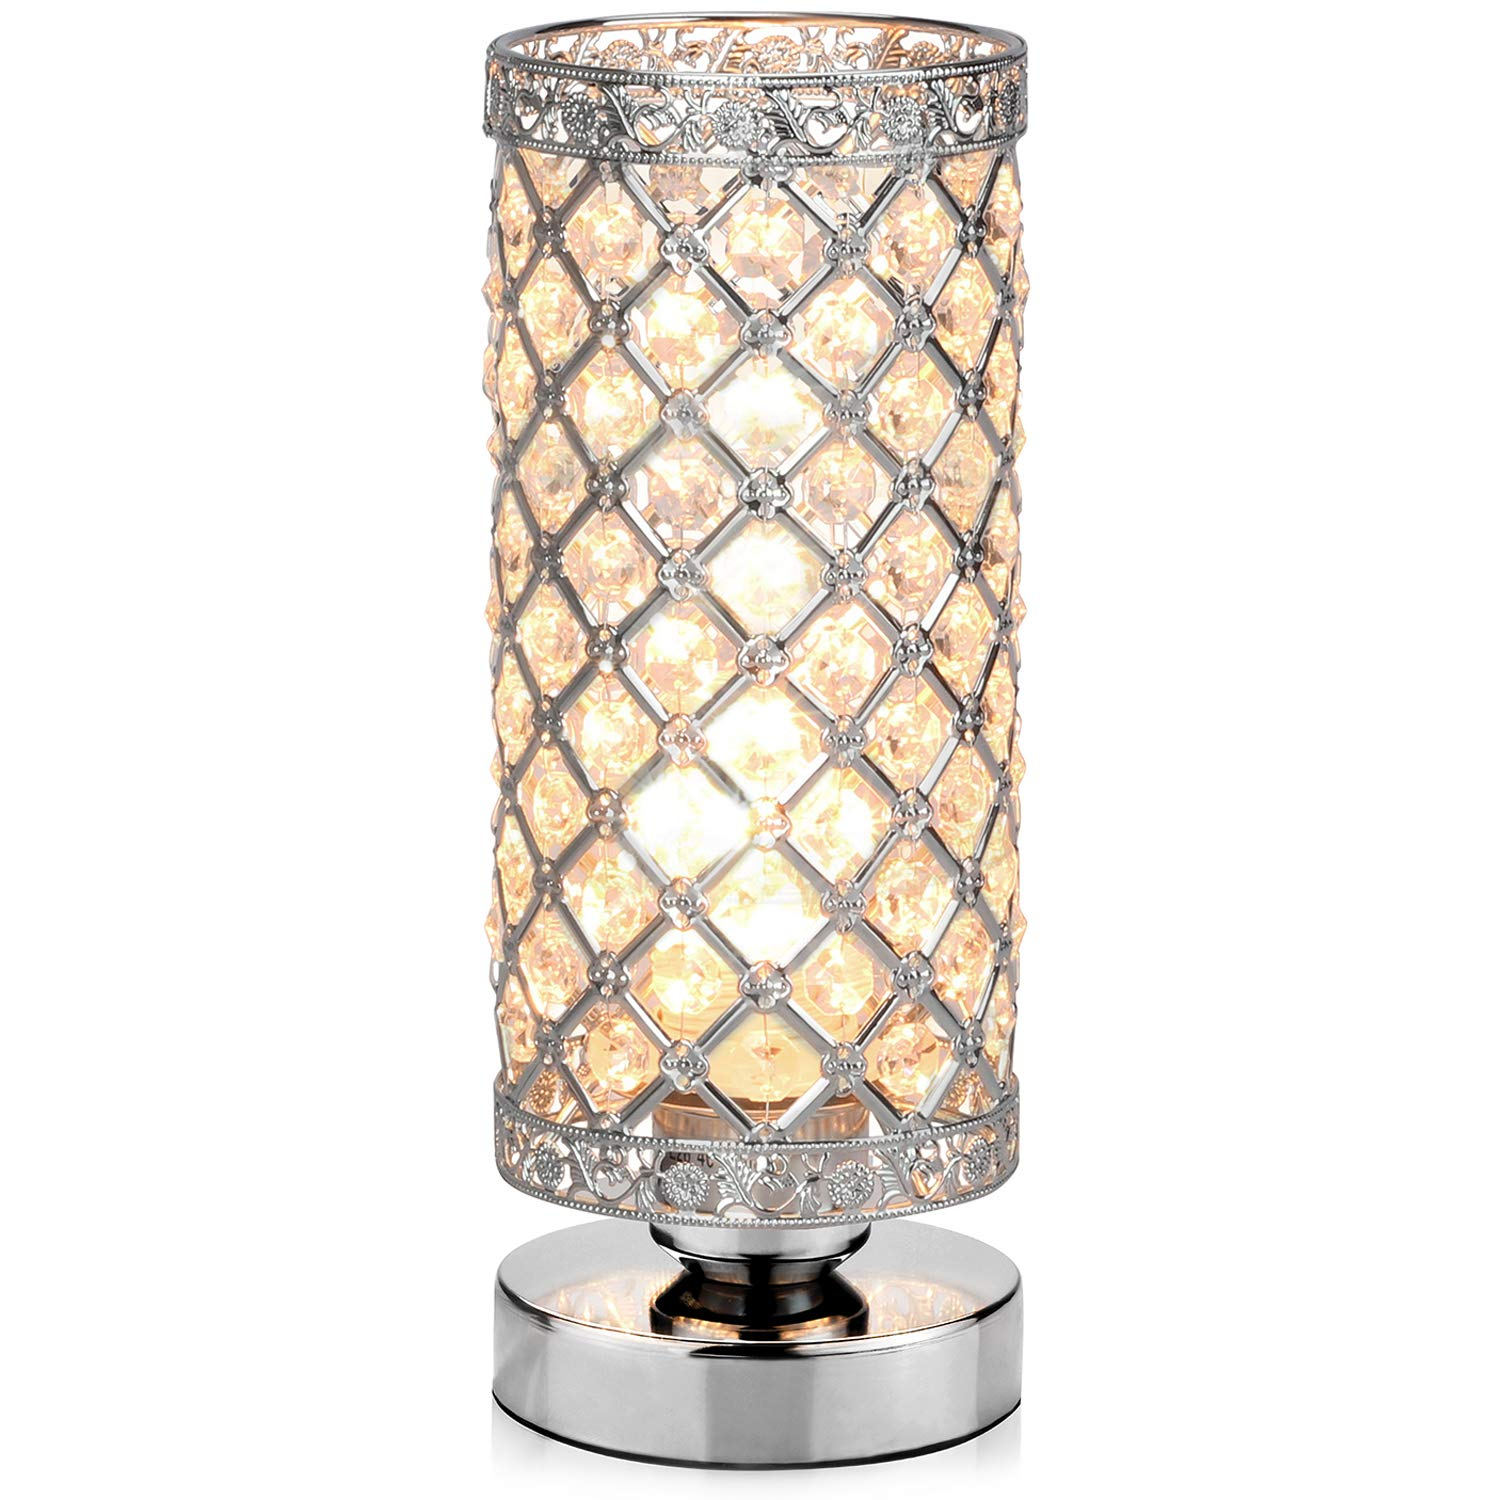 Table Lamp, Petronius Crystal Table Lamps, Decorative Bedside Nightstand Desk Lamp Shade for Bedroom, Living Room, Dining Room, Kitchen by Petronius